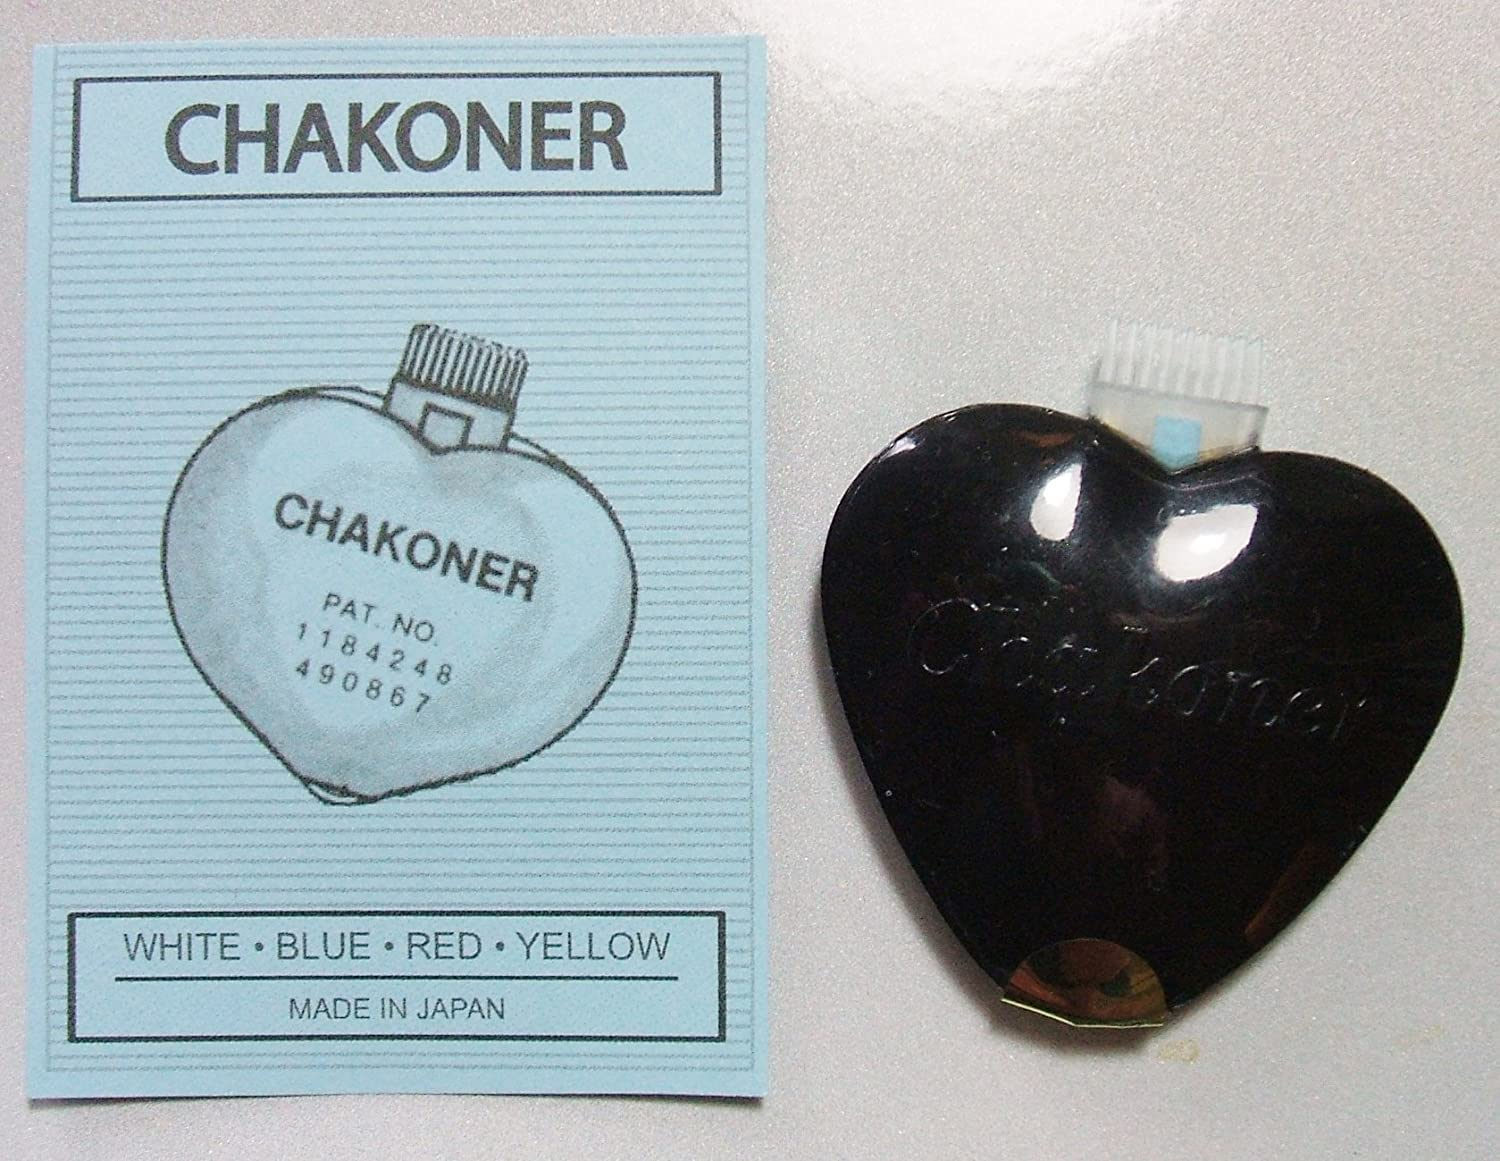 Heart Chakoner Blue Chalk Line Fabric Marker Tailor Seamstress Quilting Japanese Professional Sewing